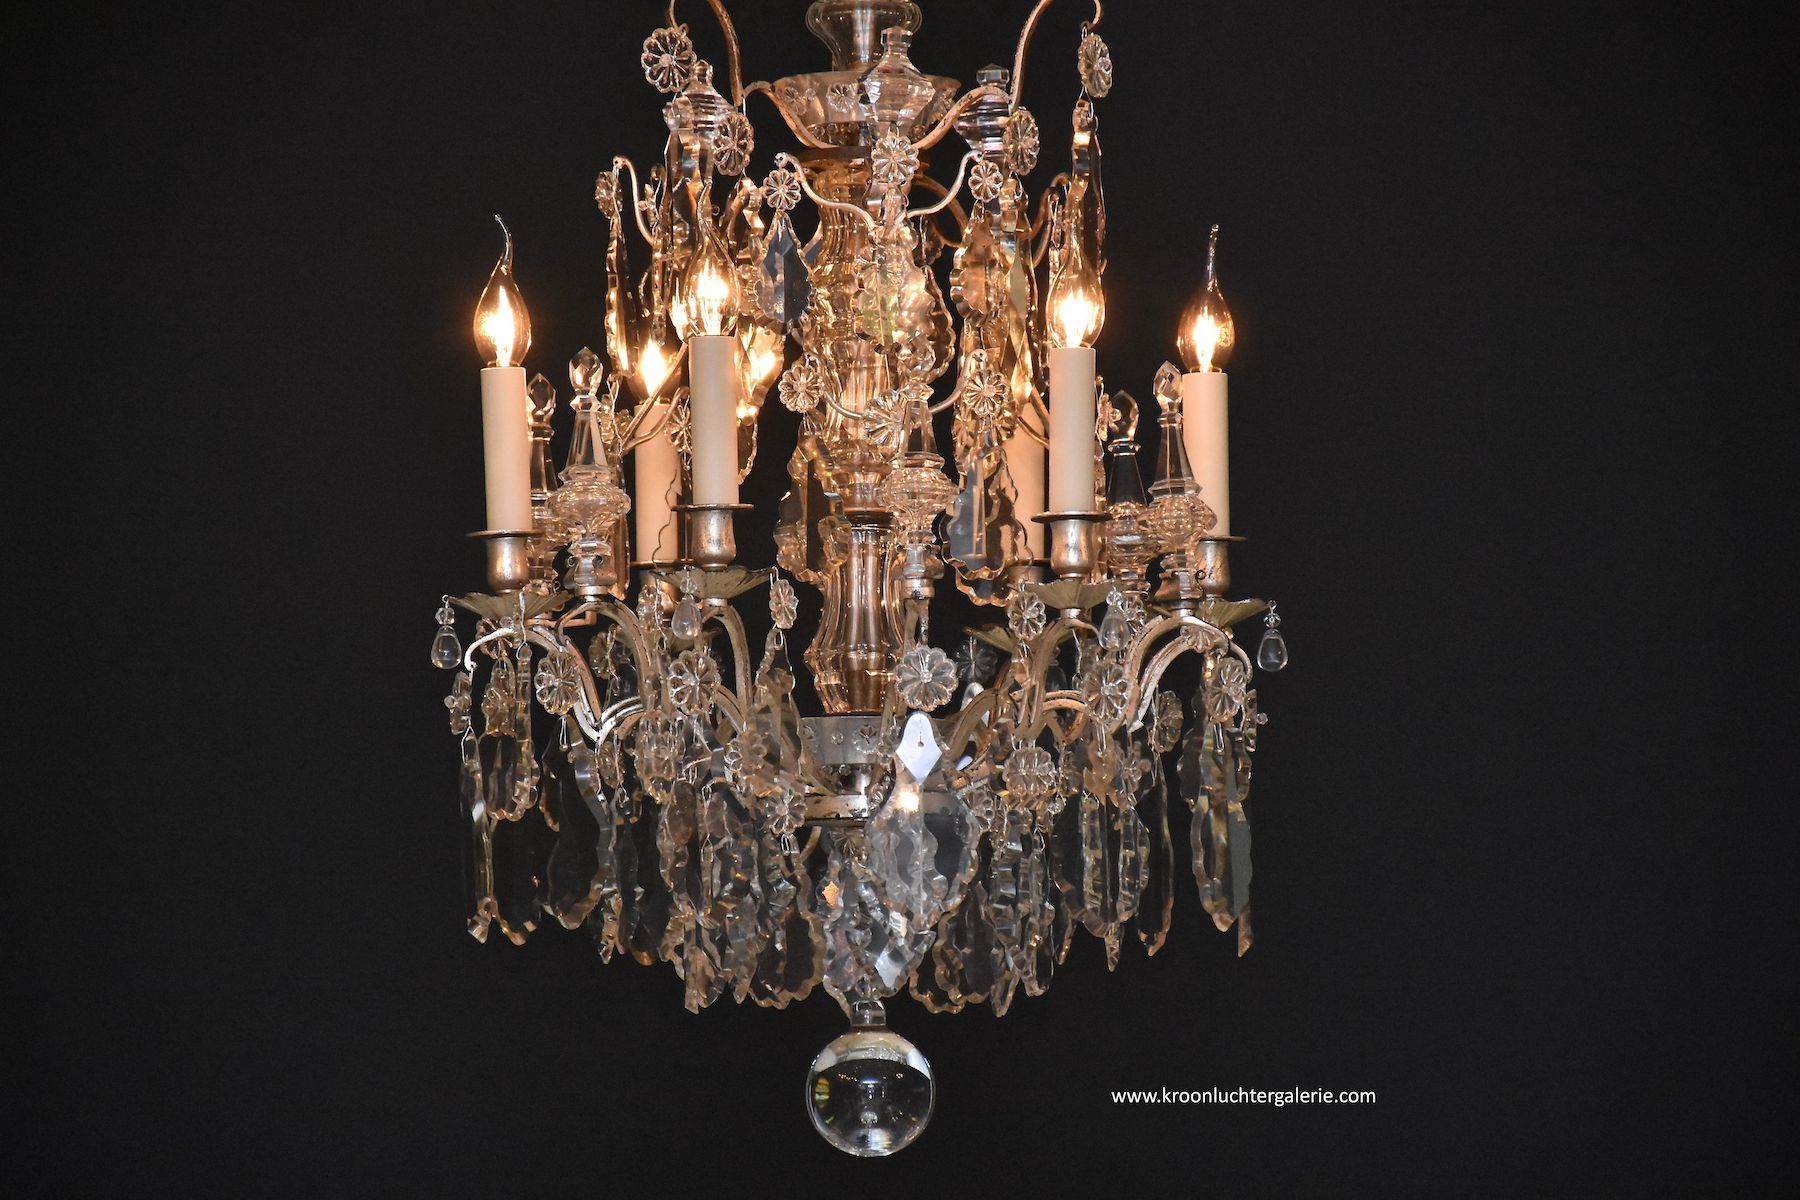 French chandelier 'lustre cage' in the style of Louis XV